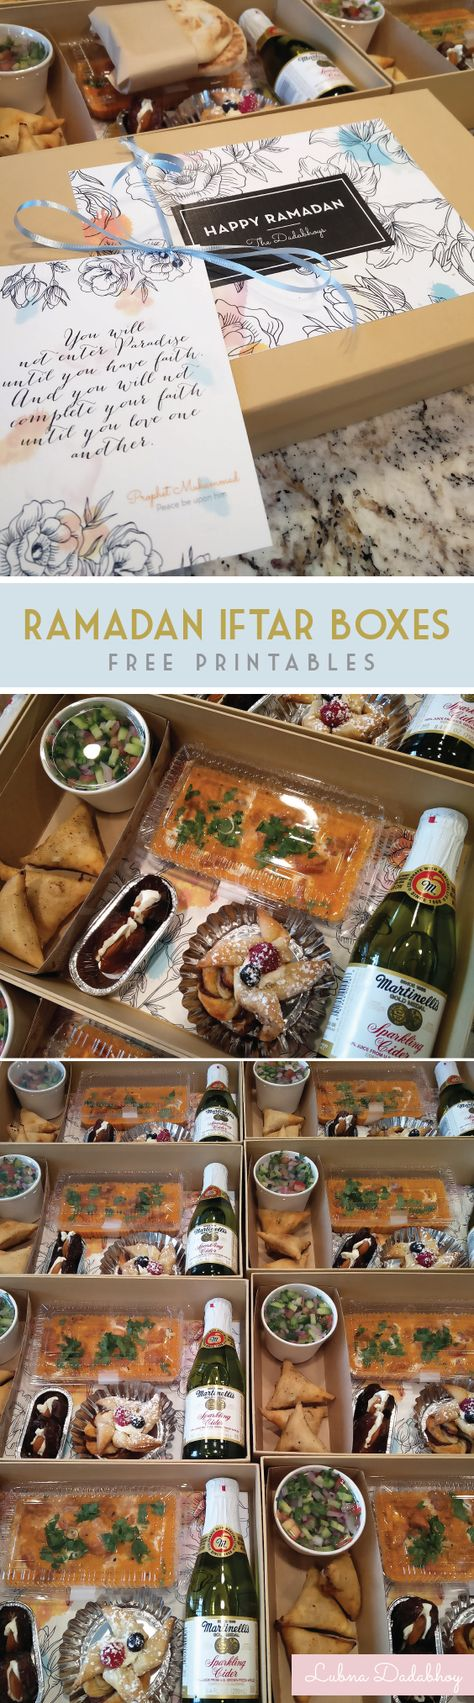 These are the 2016 Iftar boxes we made for our neighbors!  We